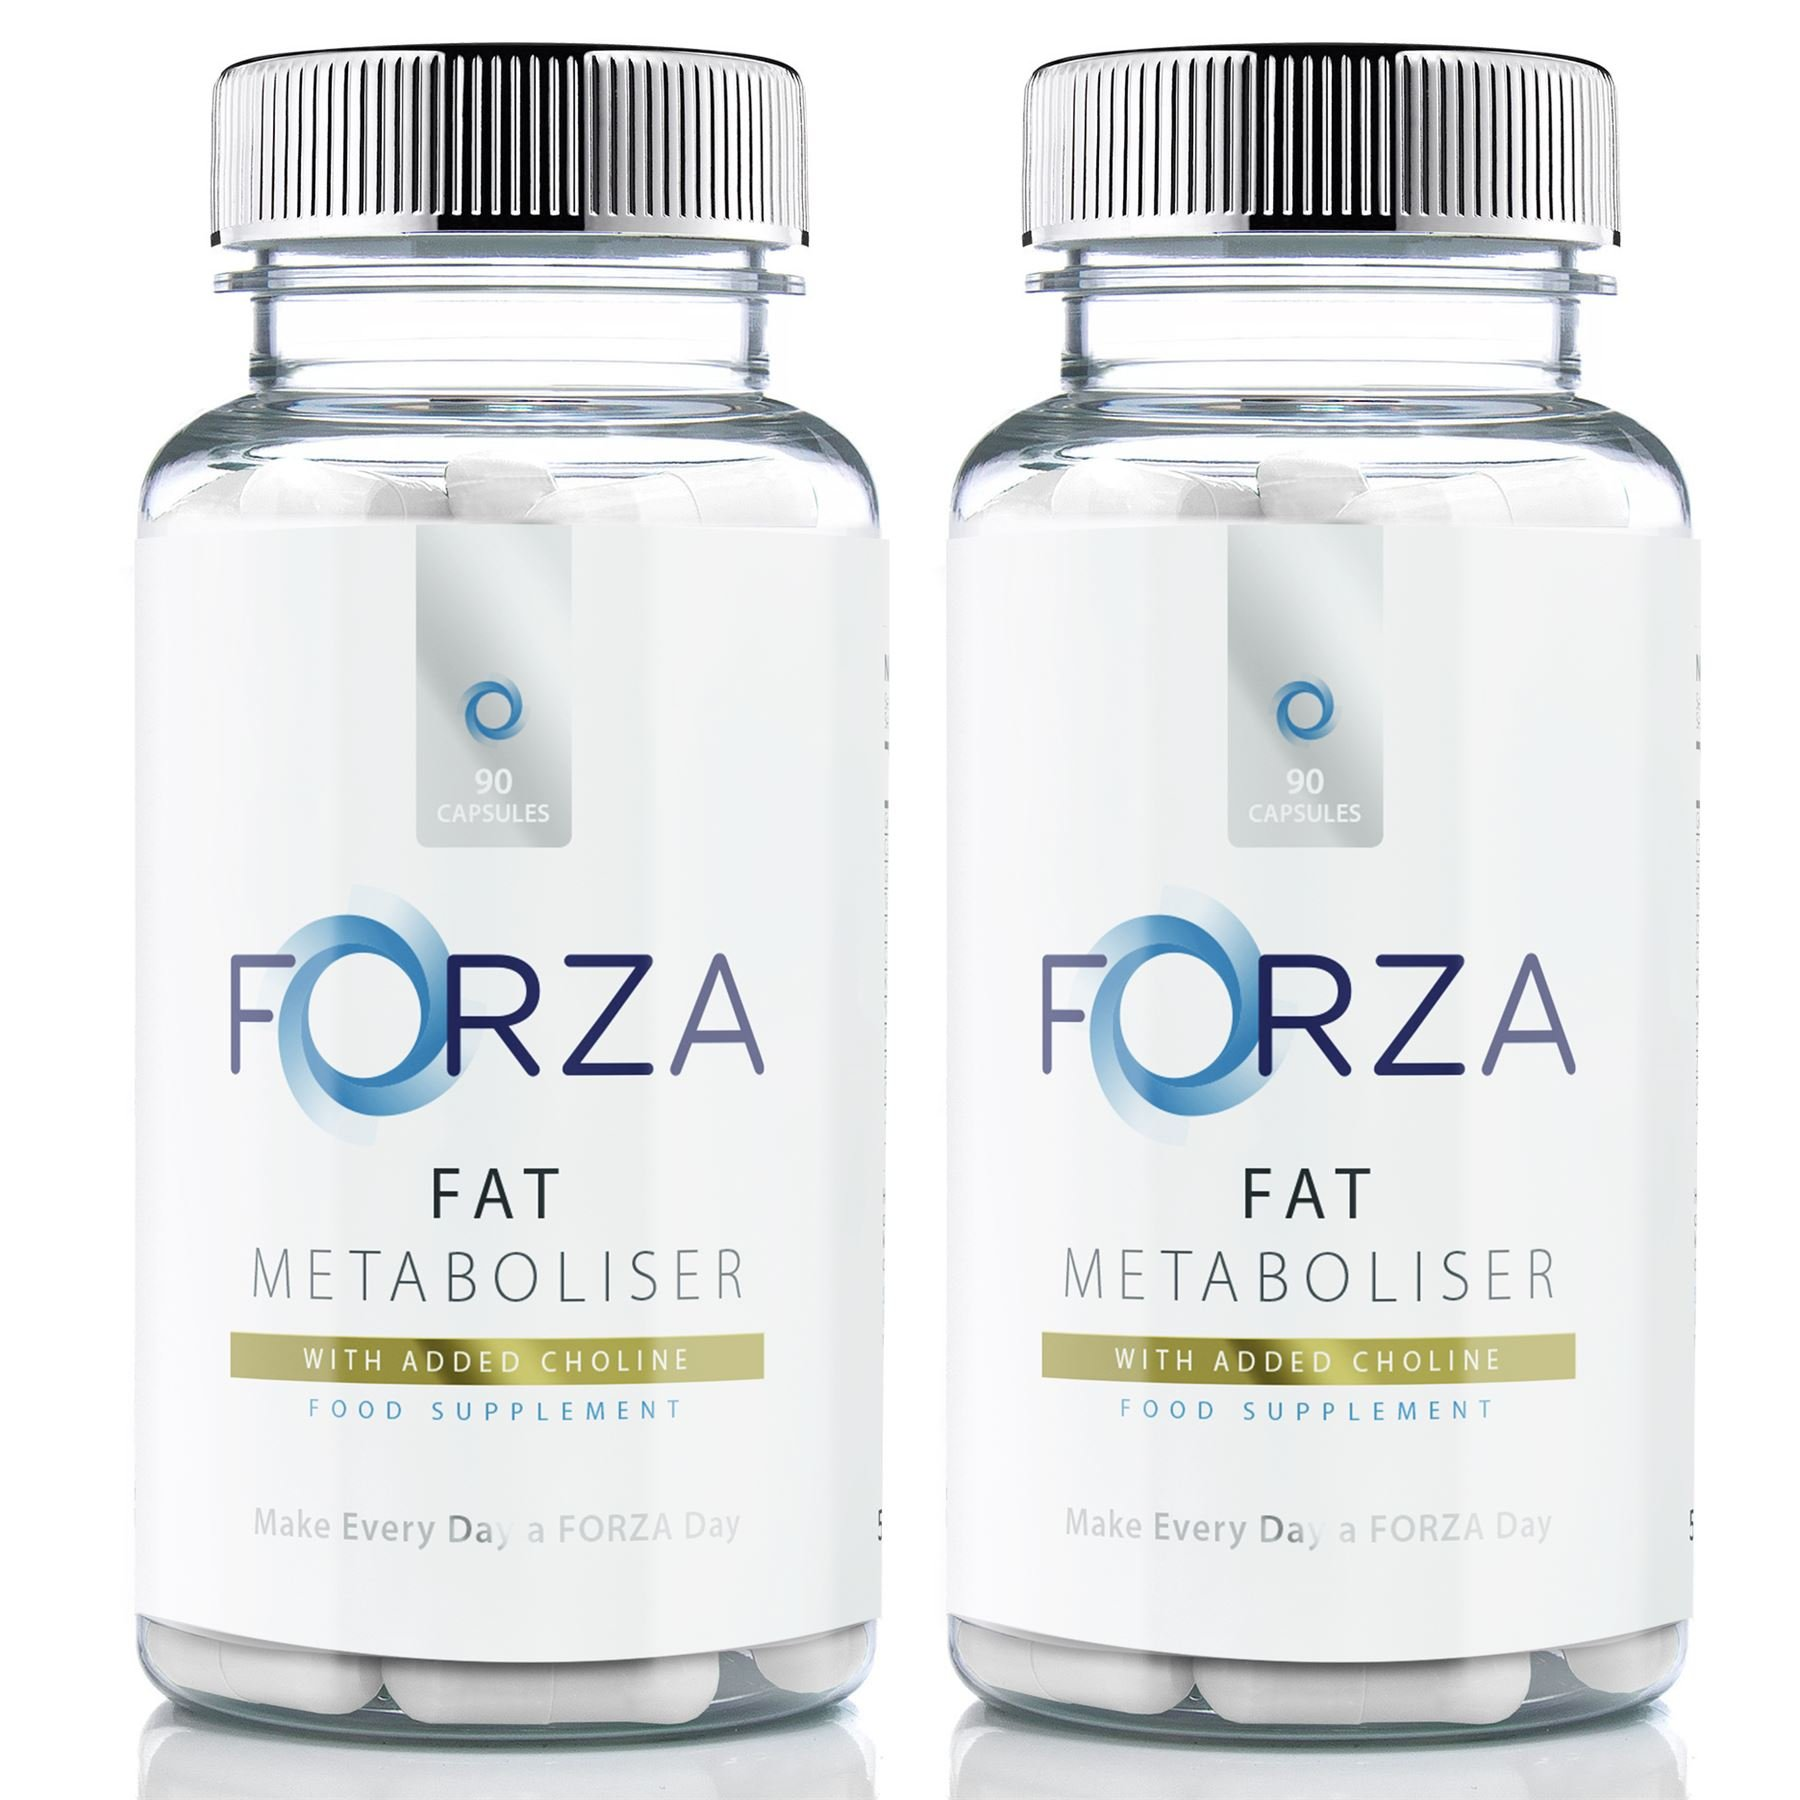 Fat Metaboliser - Slimming & Diet Pills for Weight Loss -High Strength with Choline & Zinc (180 Capsules) by Forza